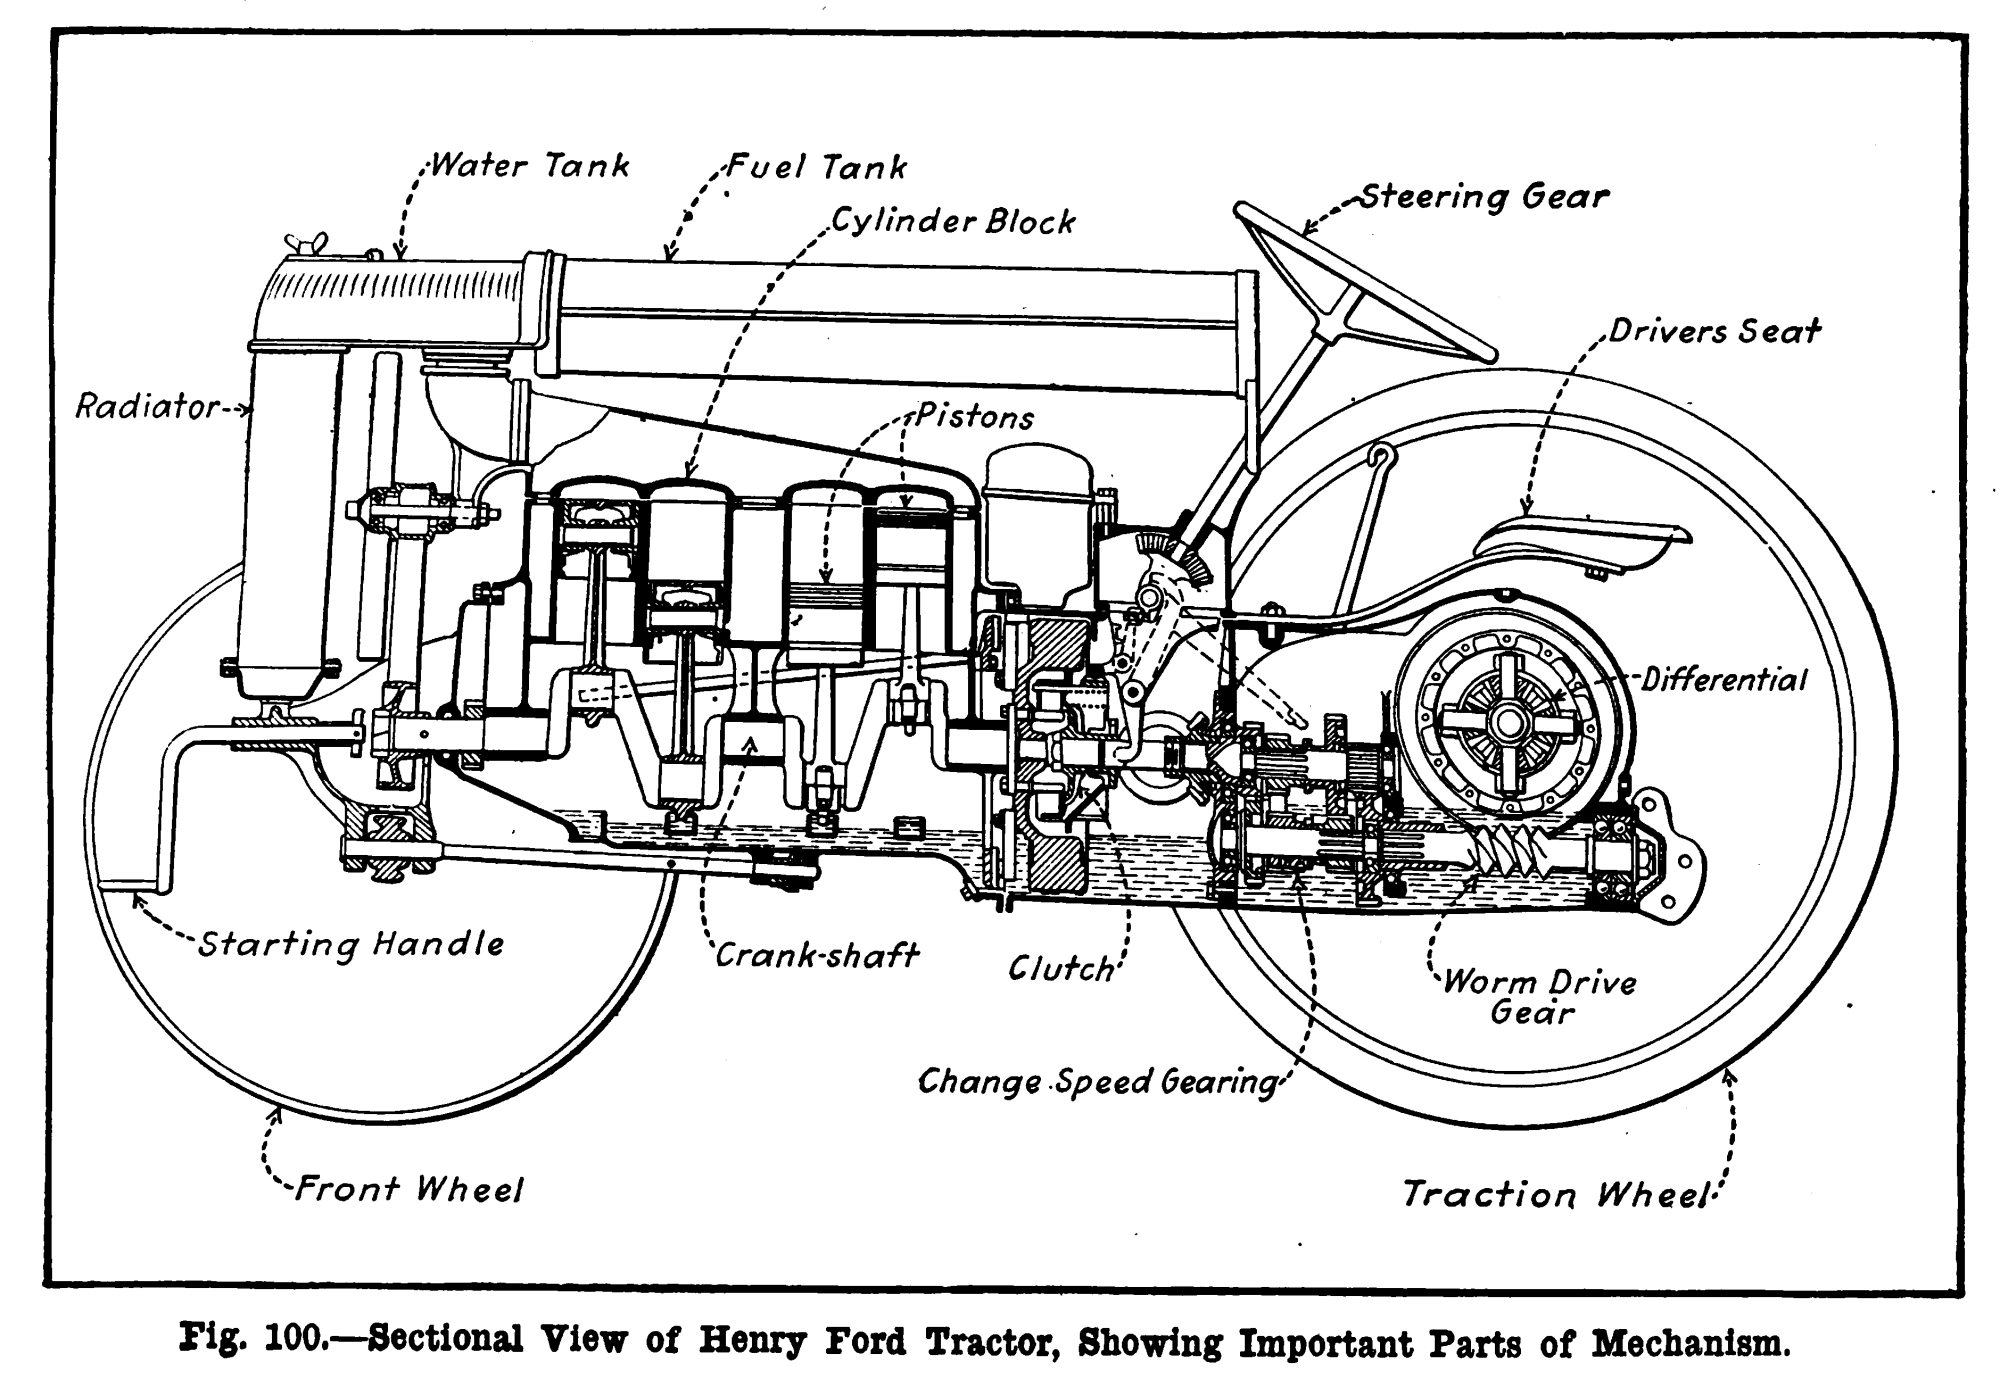 hight resolution of ford 5000 tractor transmission diagram wiring diagrams scematicford tractor schematics wiring diagram third level 8n ford